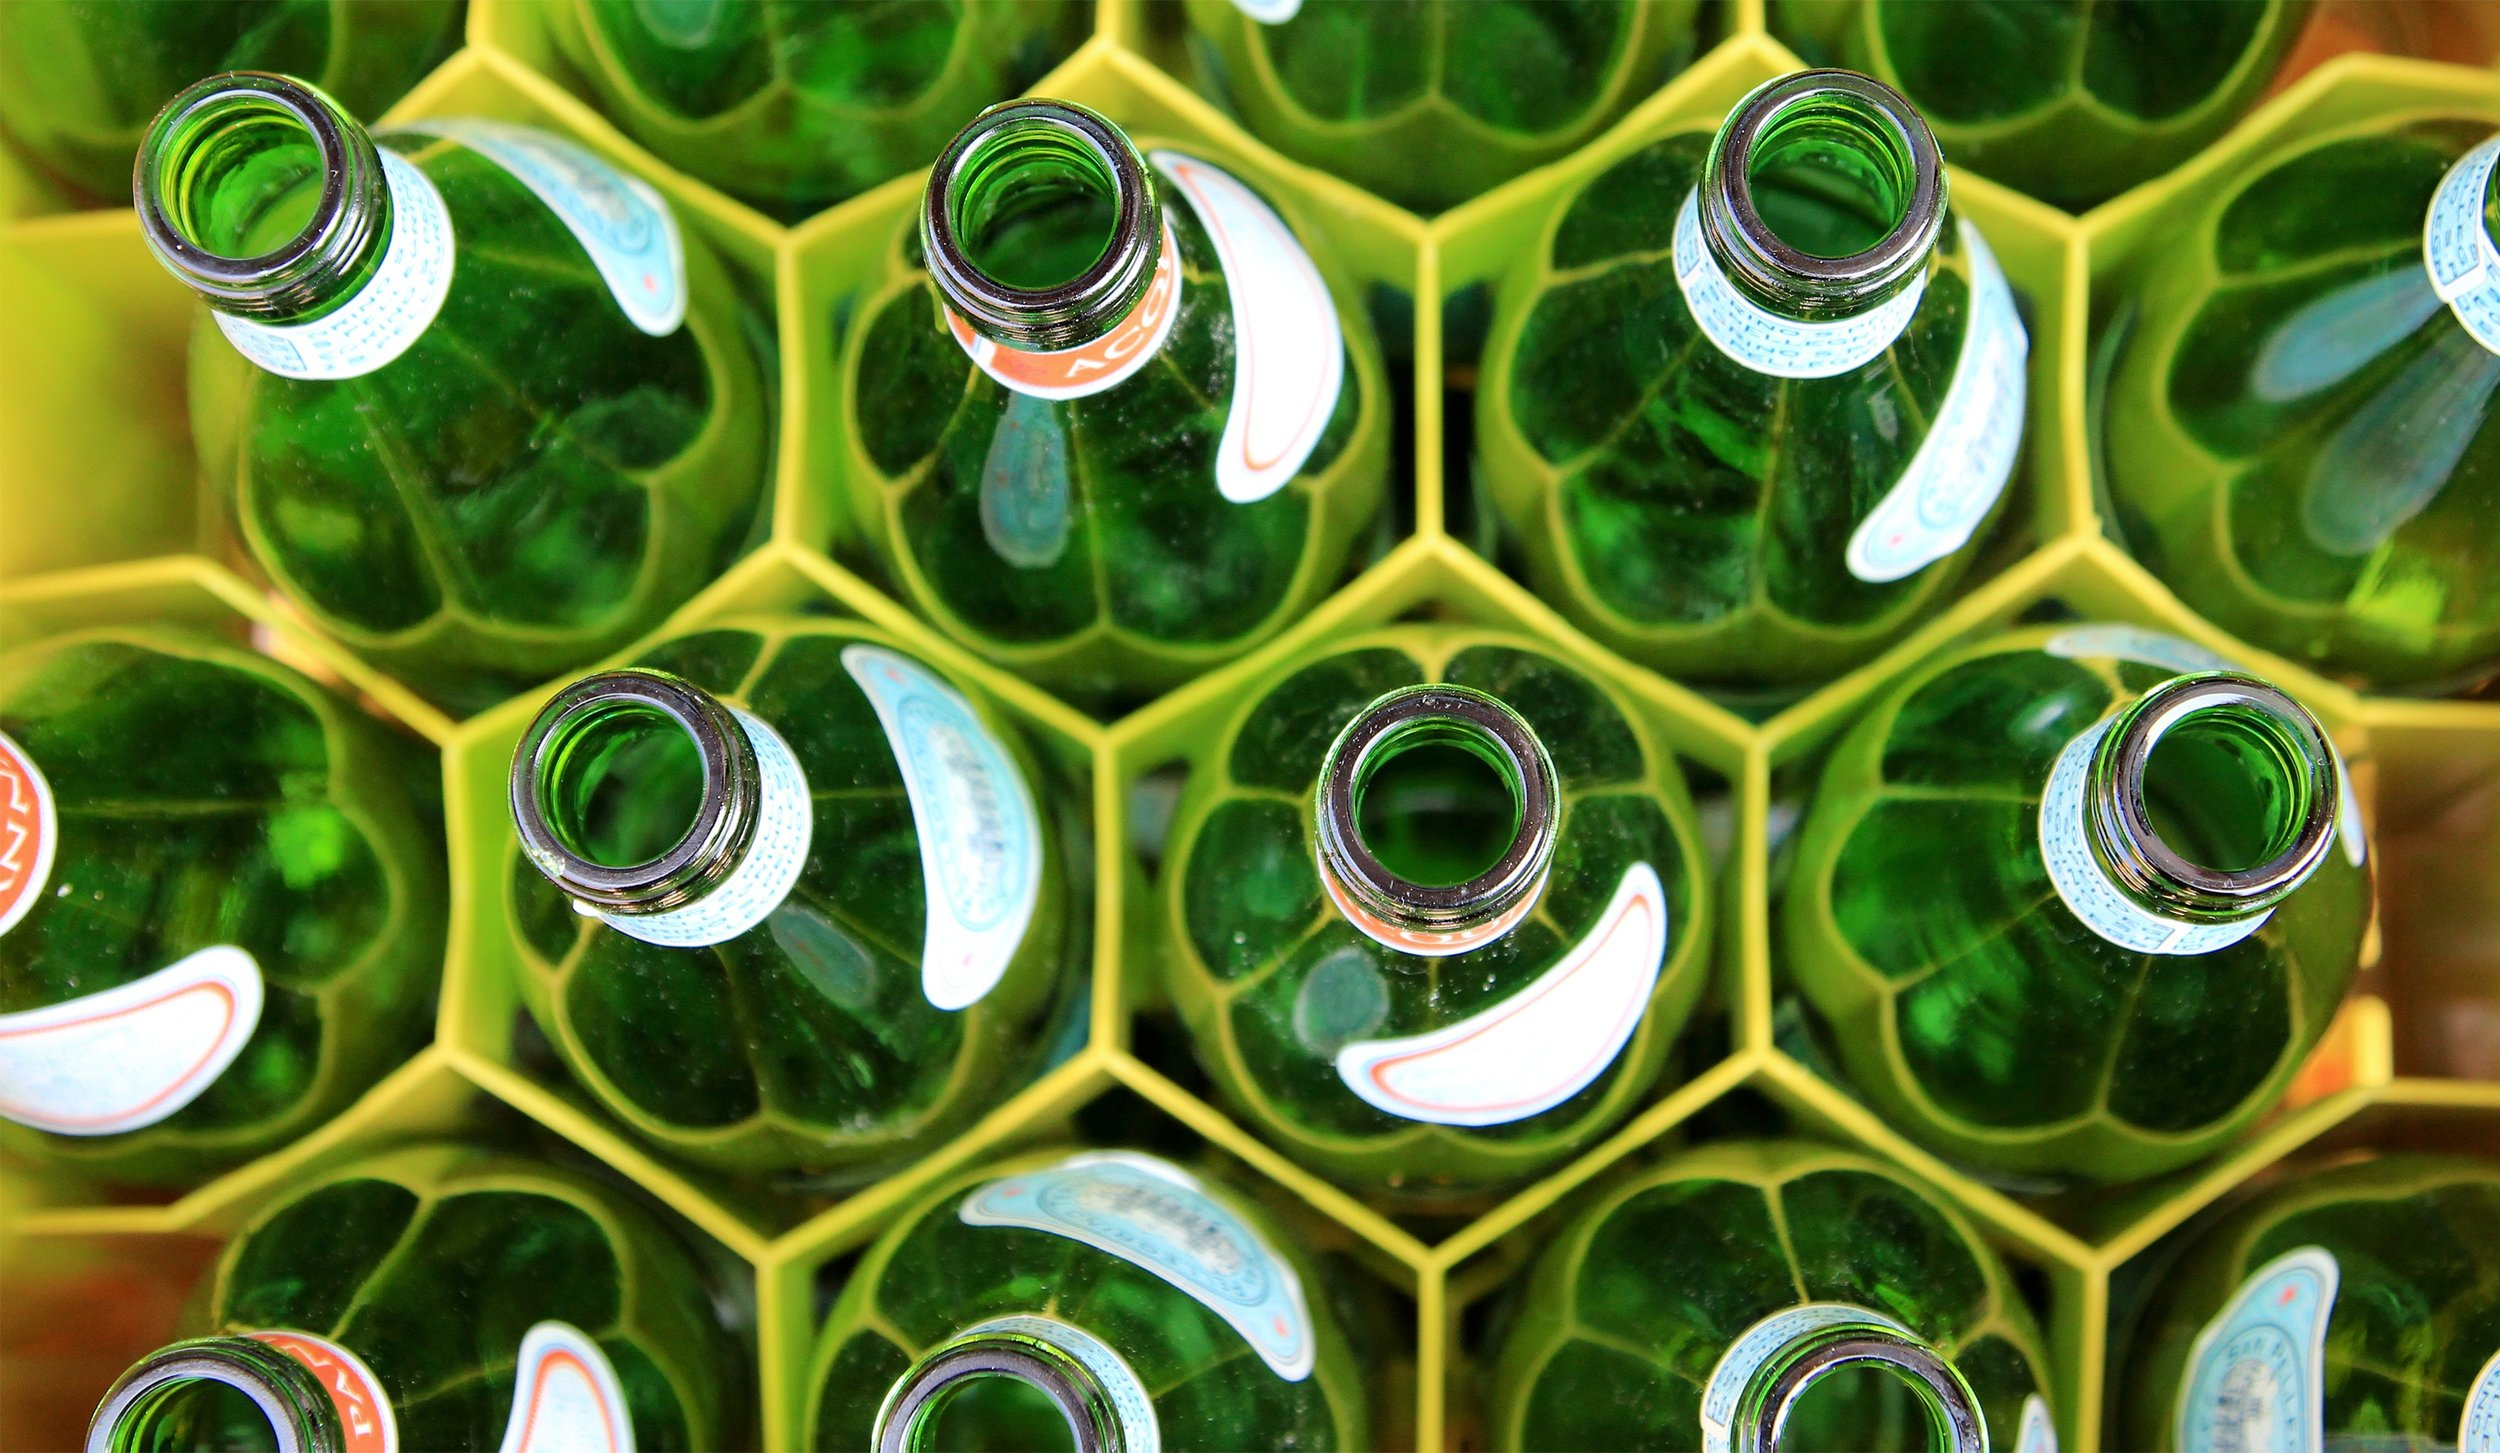 JUICE & BEVERAGE - For beverages and liquid food ingredients, UV Treatment offers the potential of a non thermal pasteurization technique that preserves the quality is cost effective, glass bottle friendly, and adaptable to a wide range of production scales. As clean label and nutrient dense food and drink become the market priority, FPE plans to make UV Treatment the industry standard.